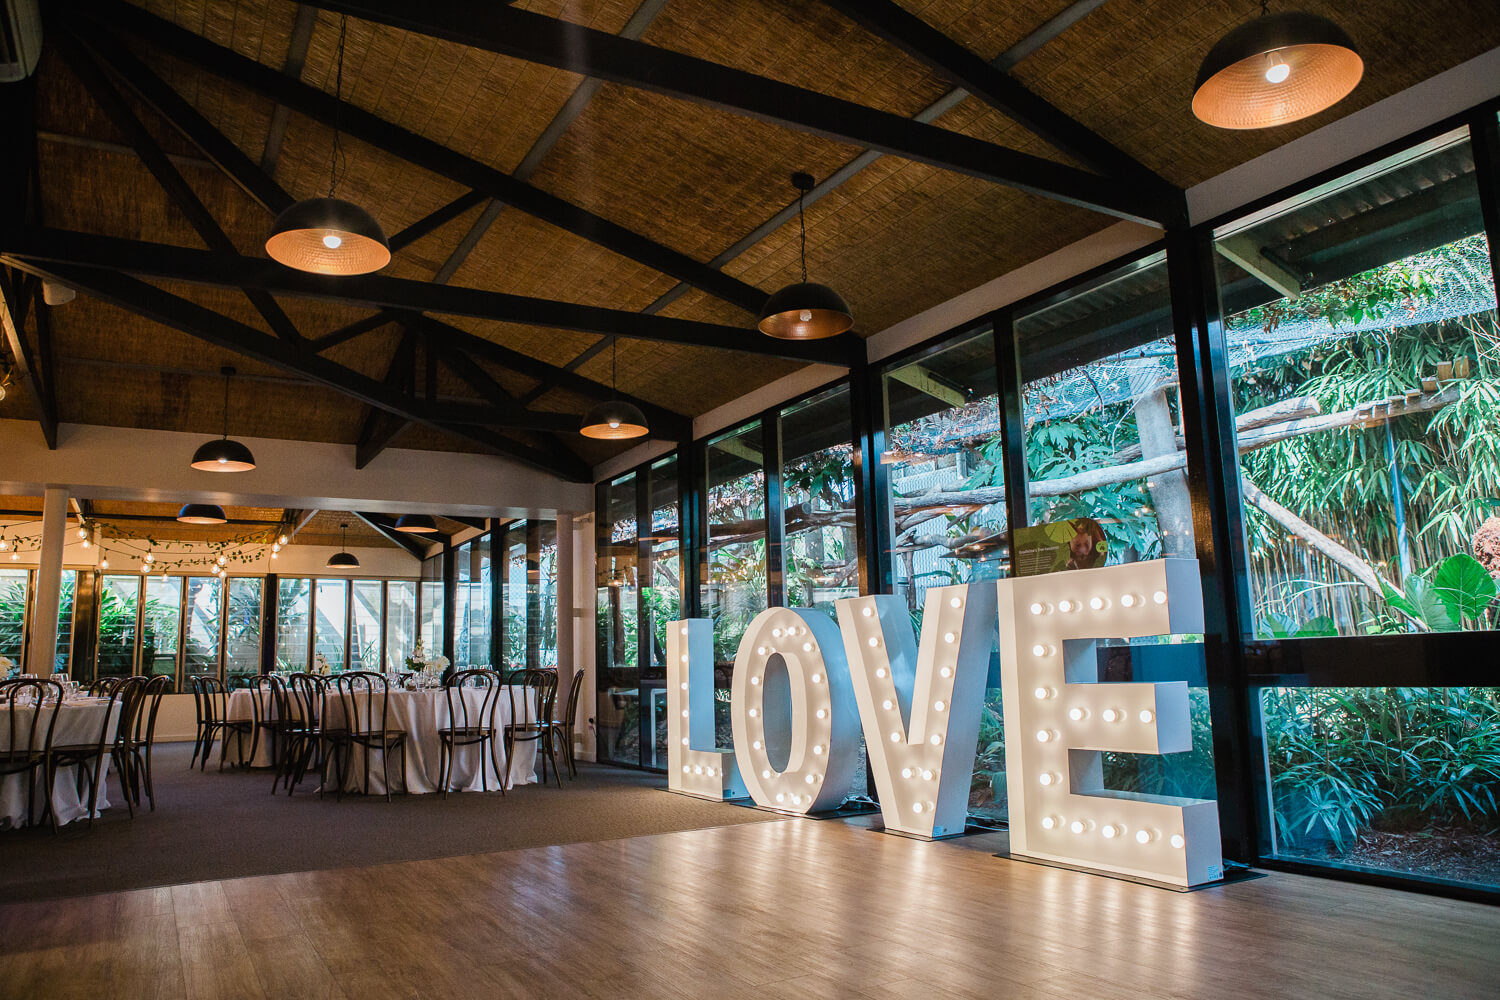 wedding hire side picture of light up love letters at melbourne zoo wedding venue